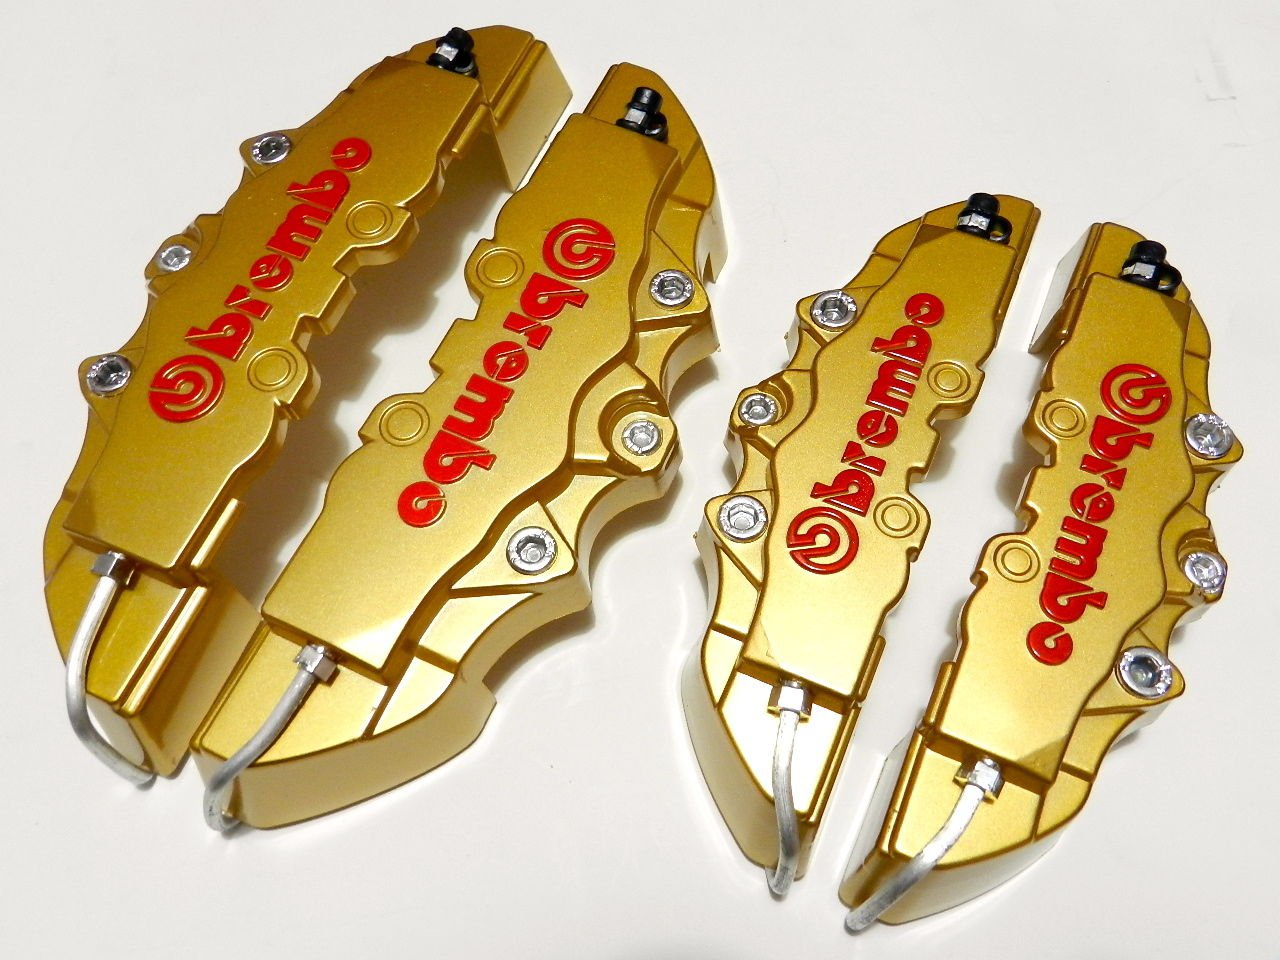 GOLD 4PC F+R UNIVERSAL 3D ABS PLASTIC DISC BRAKE CALIPER COVERS